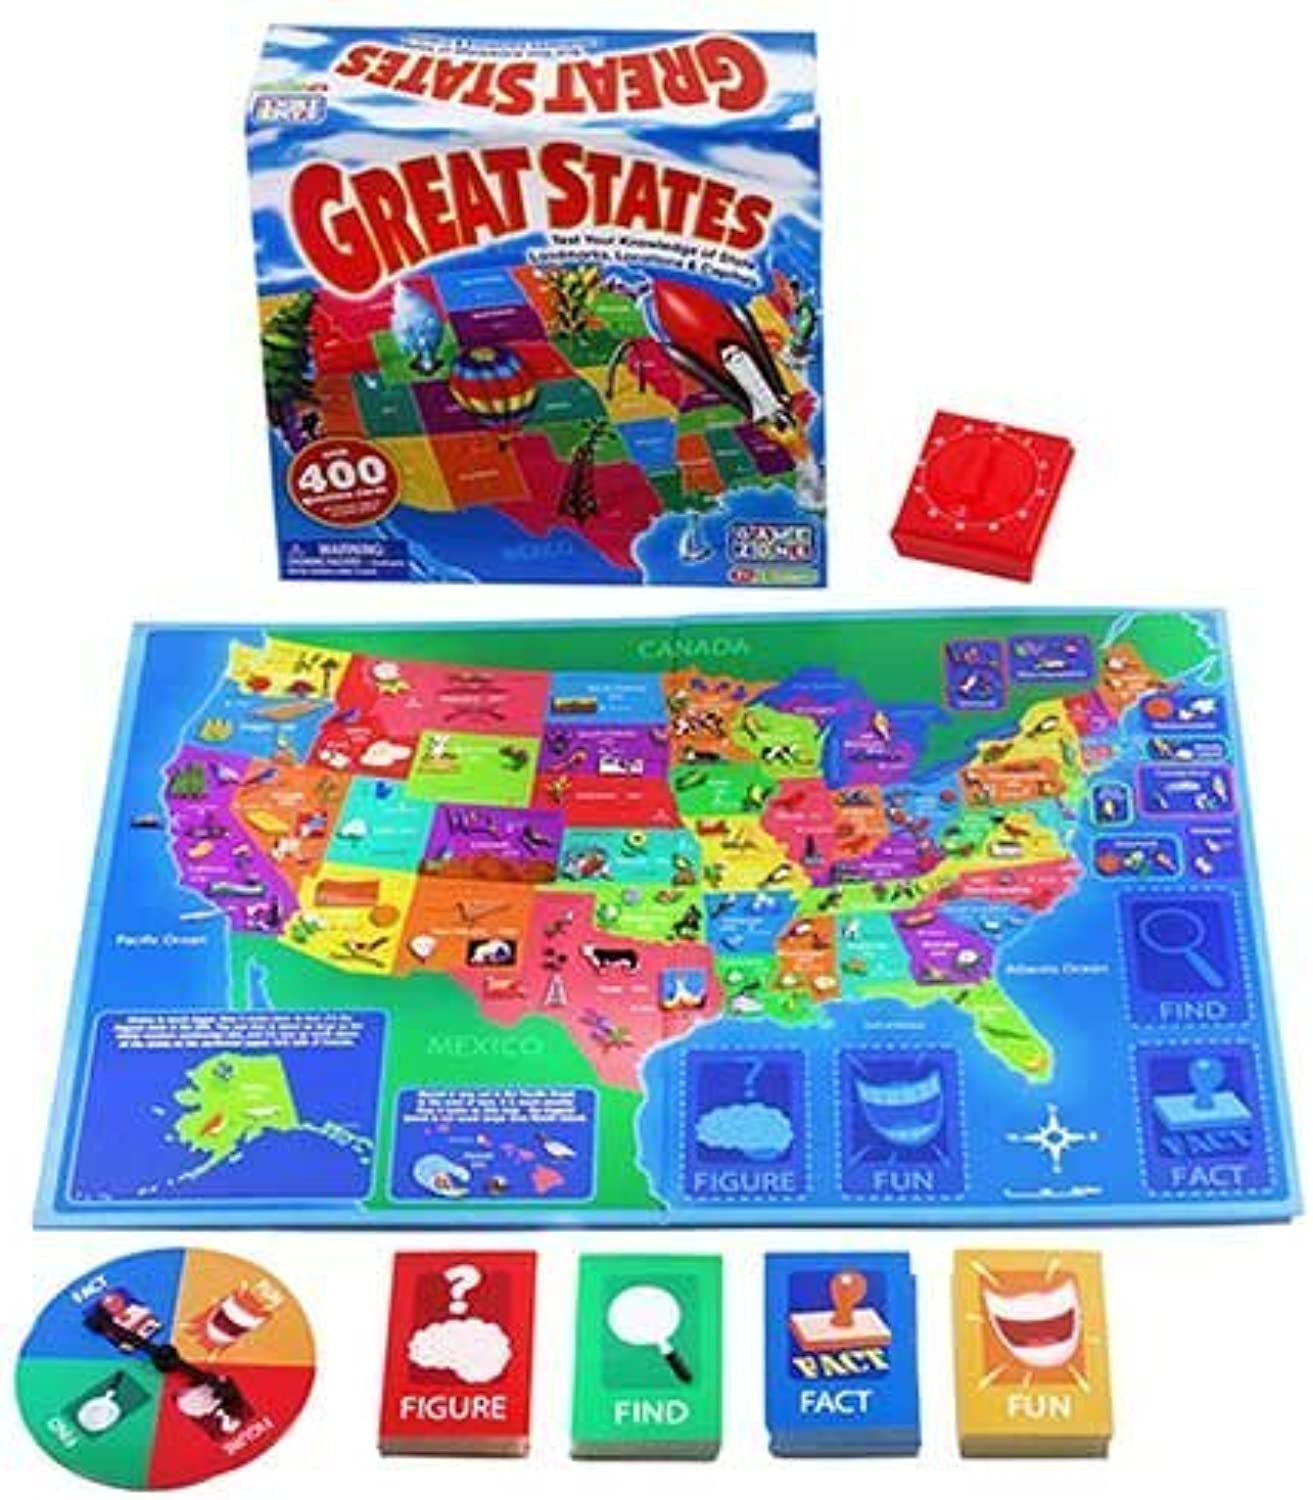 Great States by International Playthings